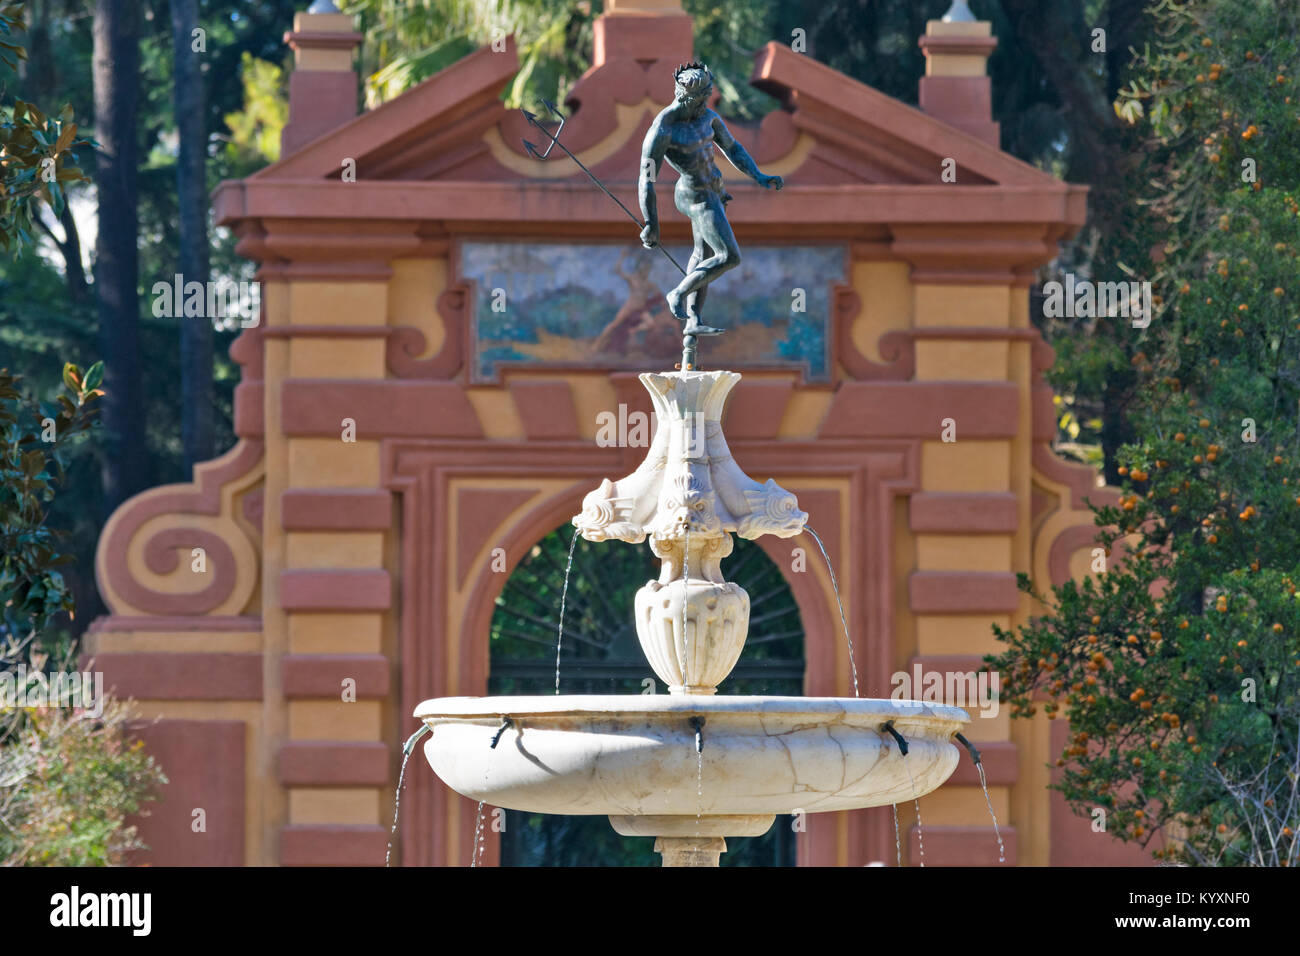 ALCAZAR SEVILLE SPAIN THE FORMAL GARDENS A STATUE OF NEPTUNE ON A FOUNTAIN IN THE GARDEN WITH ARCHWAY AND ORANGE - Stock Image